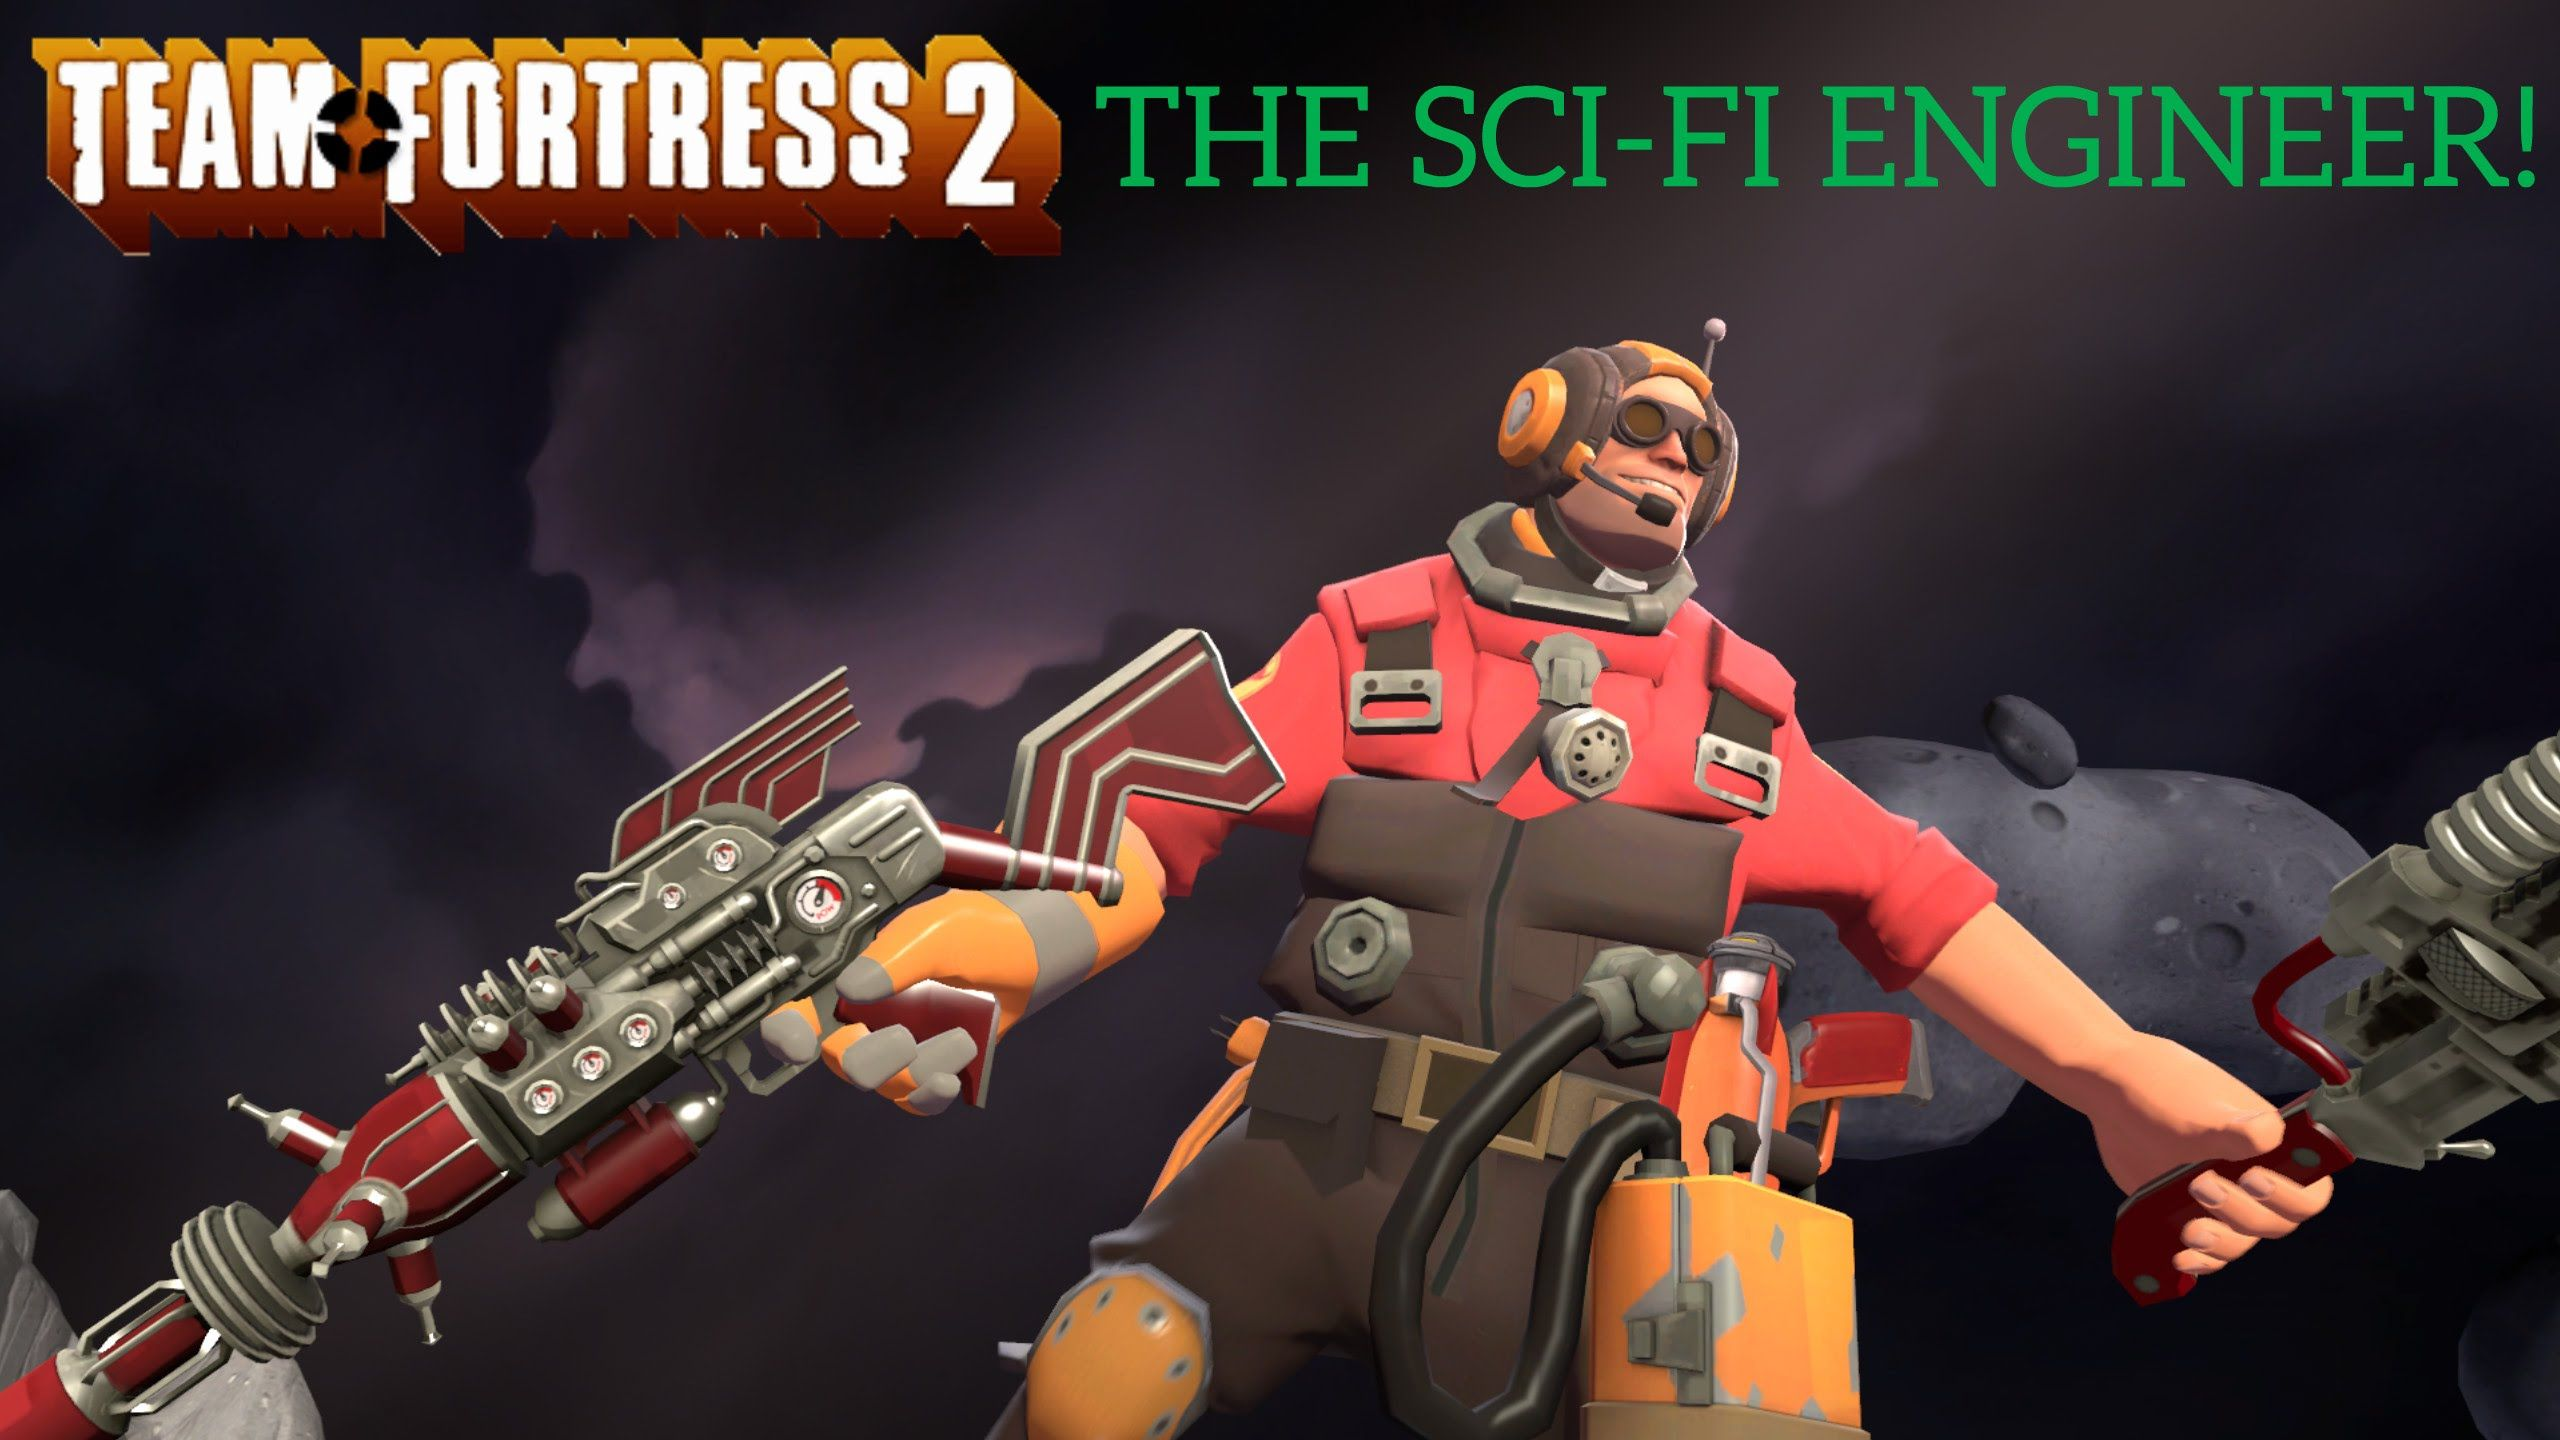 TF2: Weapon challenges]-[The Sci-fi engineer! | [!Video and Image